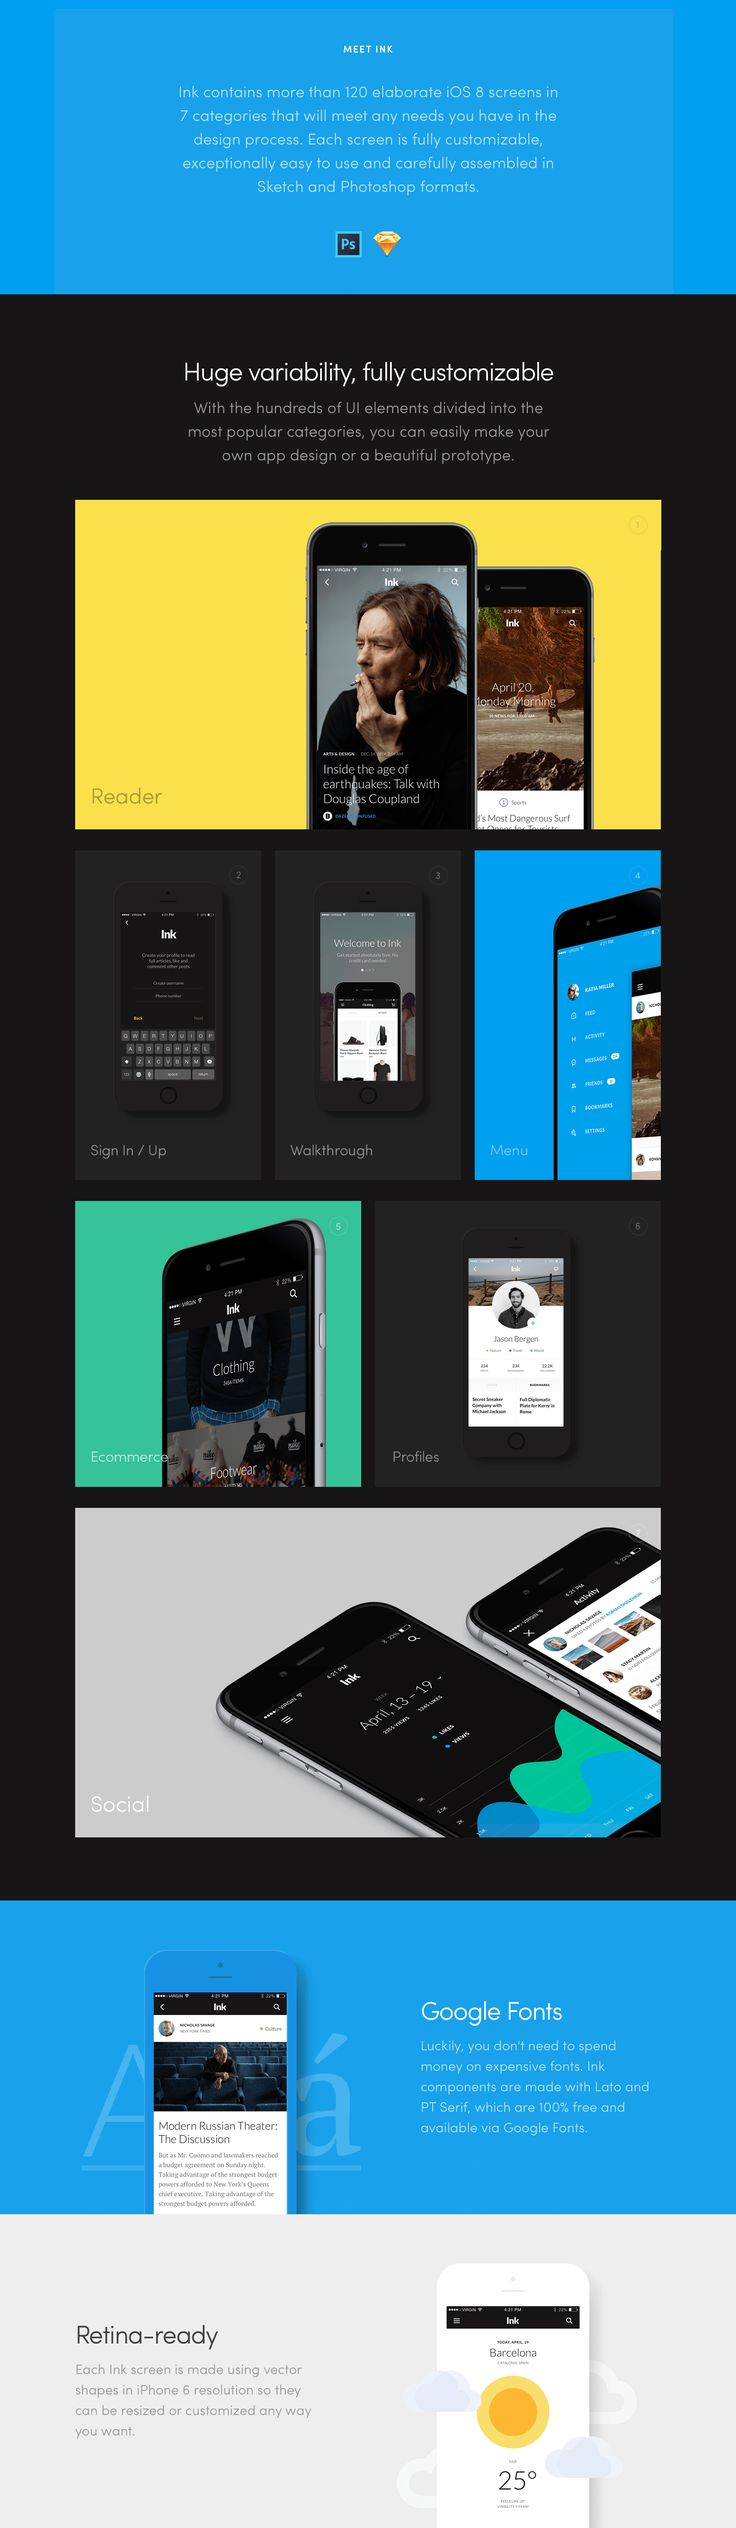 Ink UI Kit - iOS Screens for Photoshop & Sketch on Behance